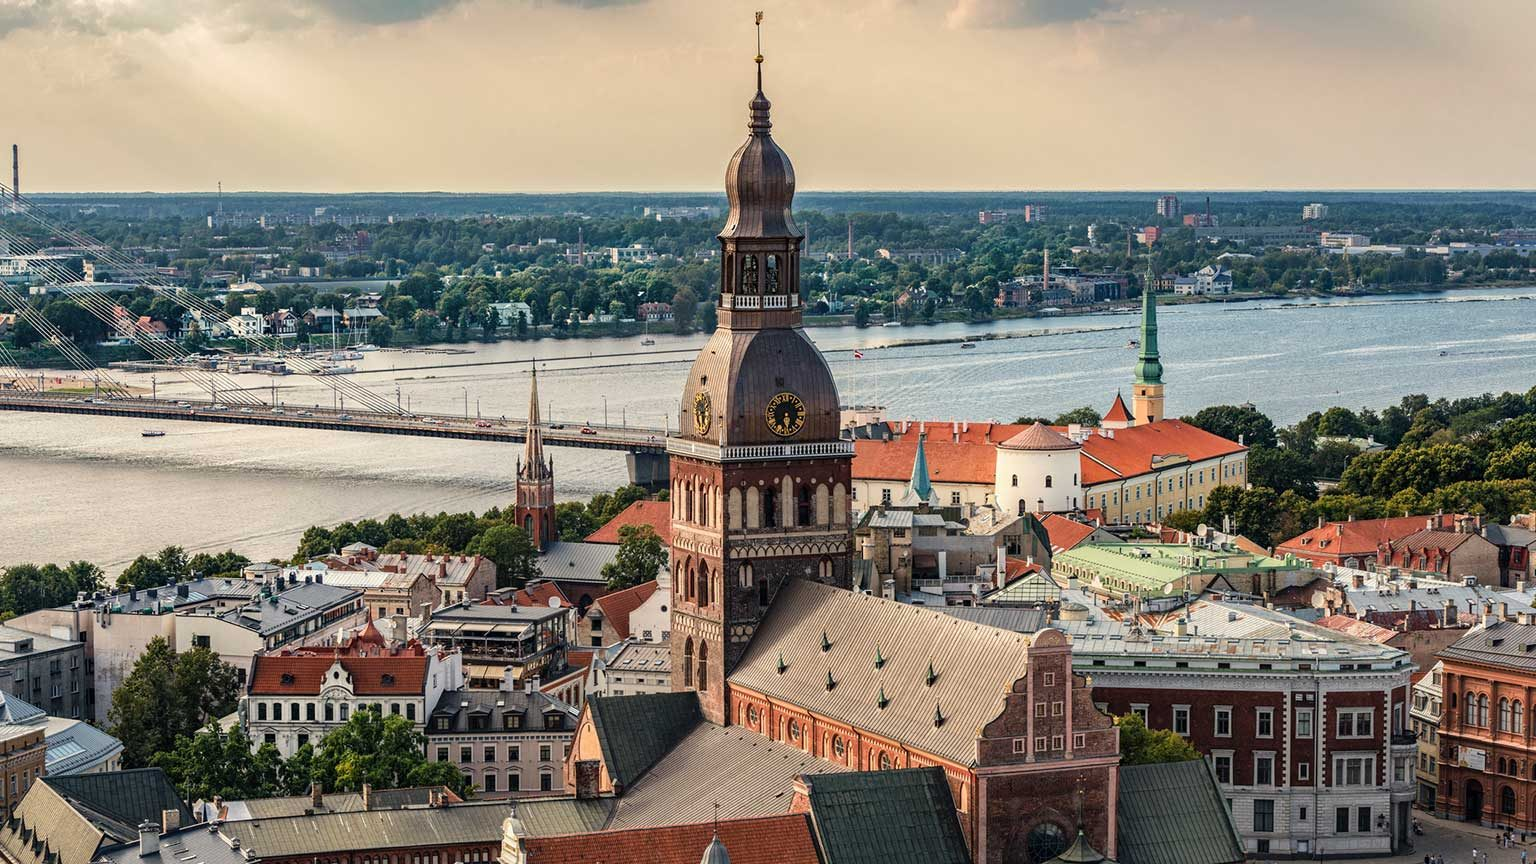 Aerial view of Riga, Latvia city and river